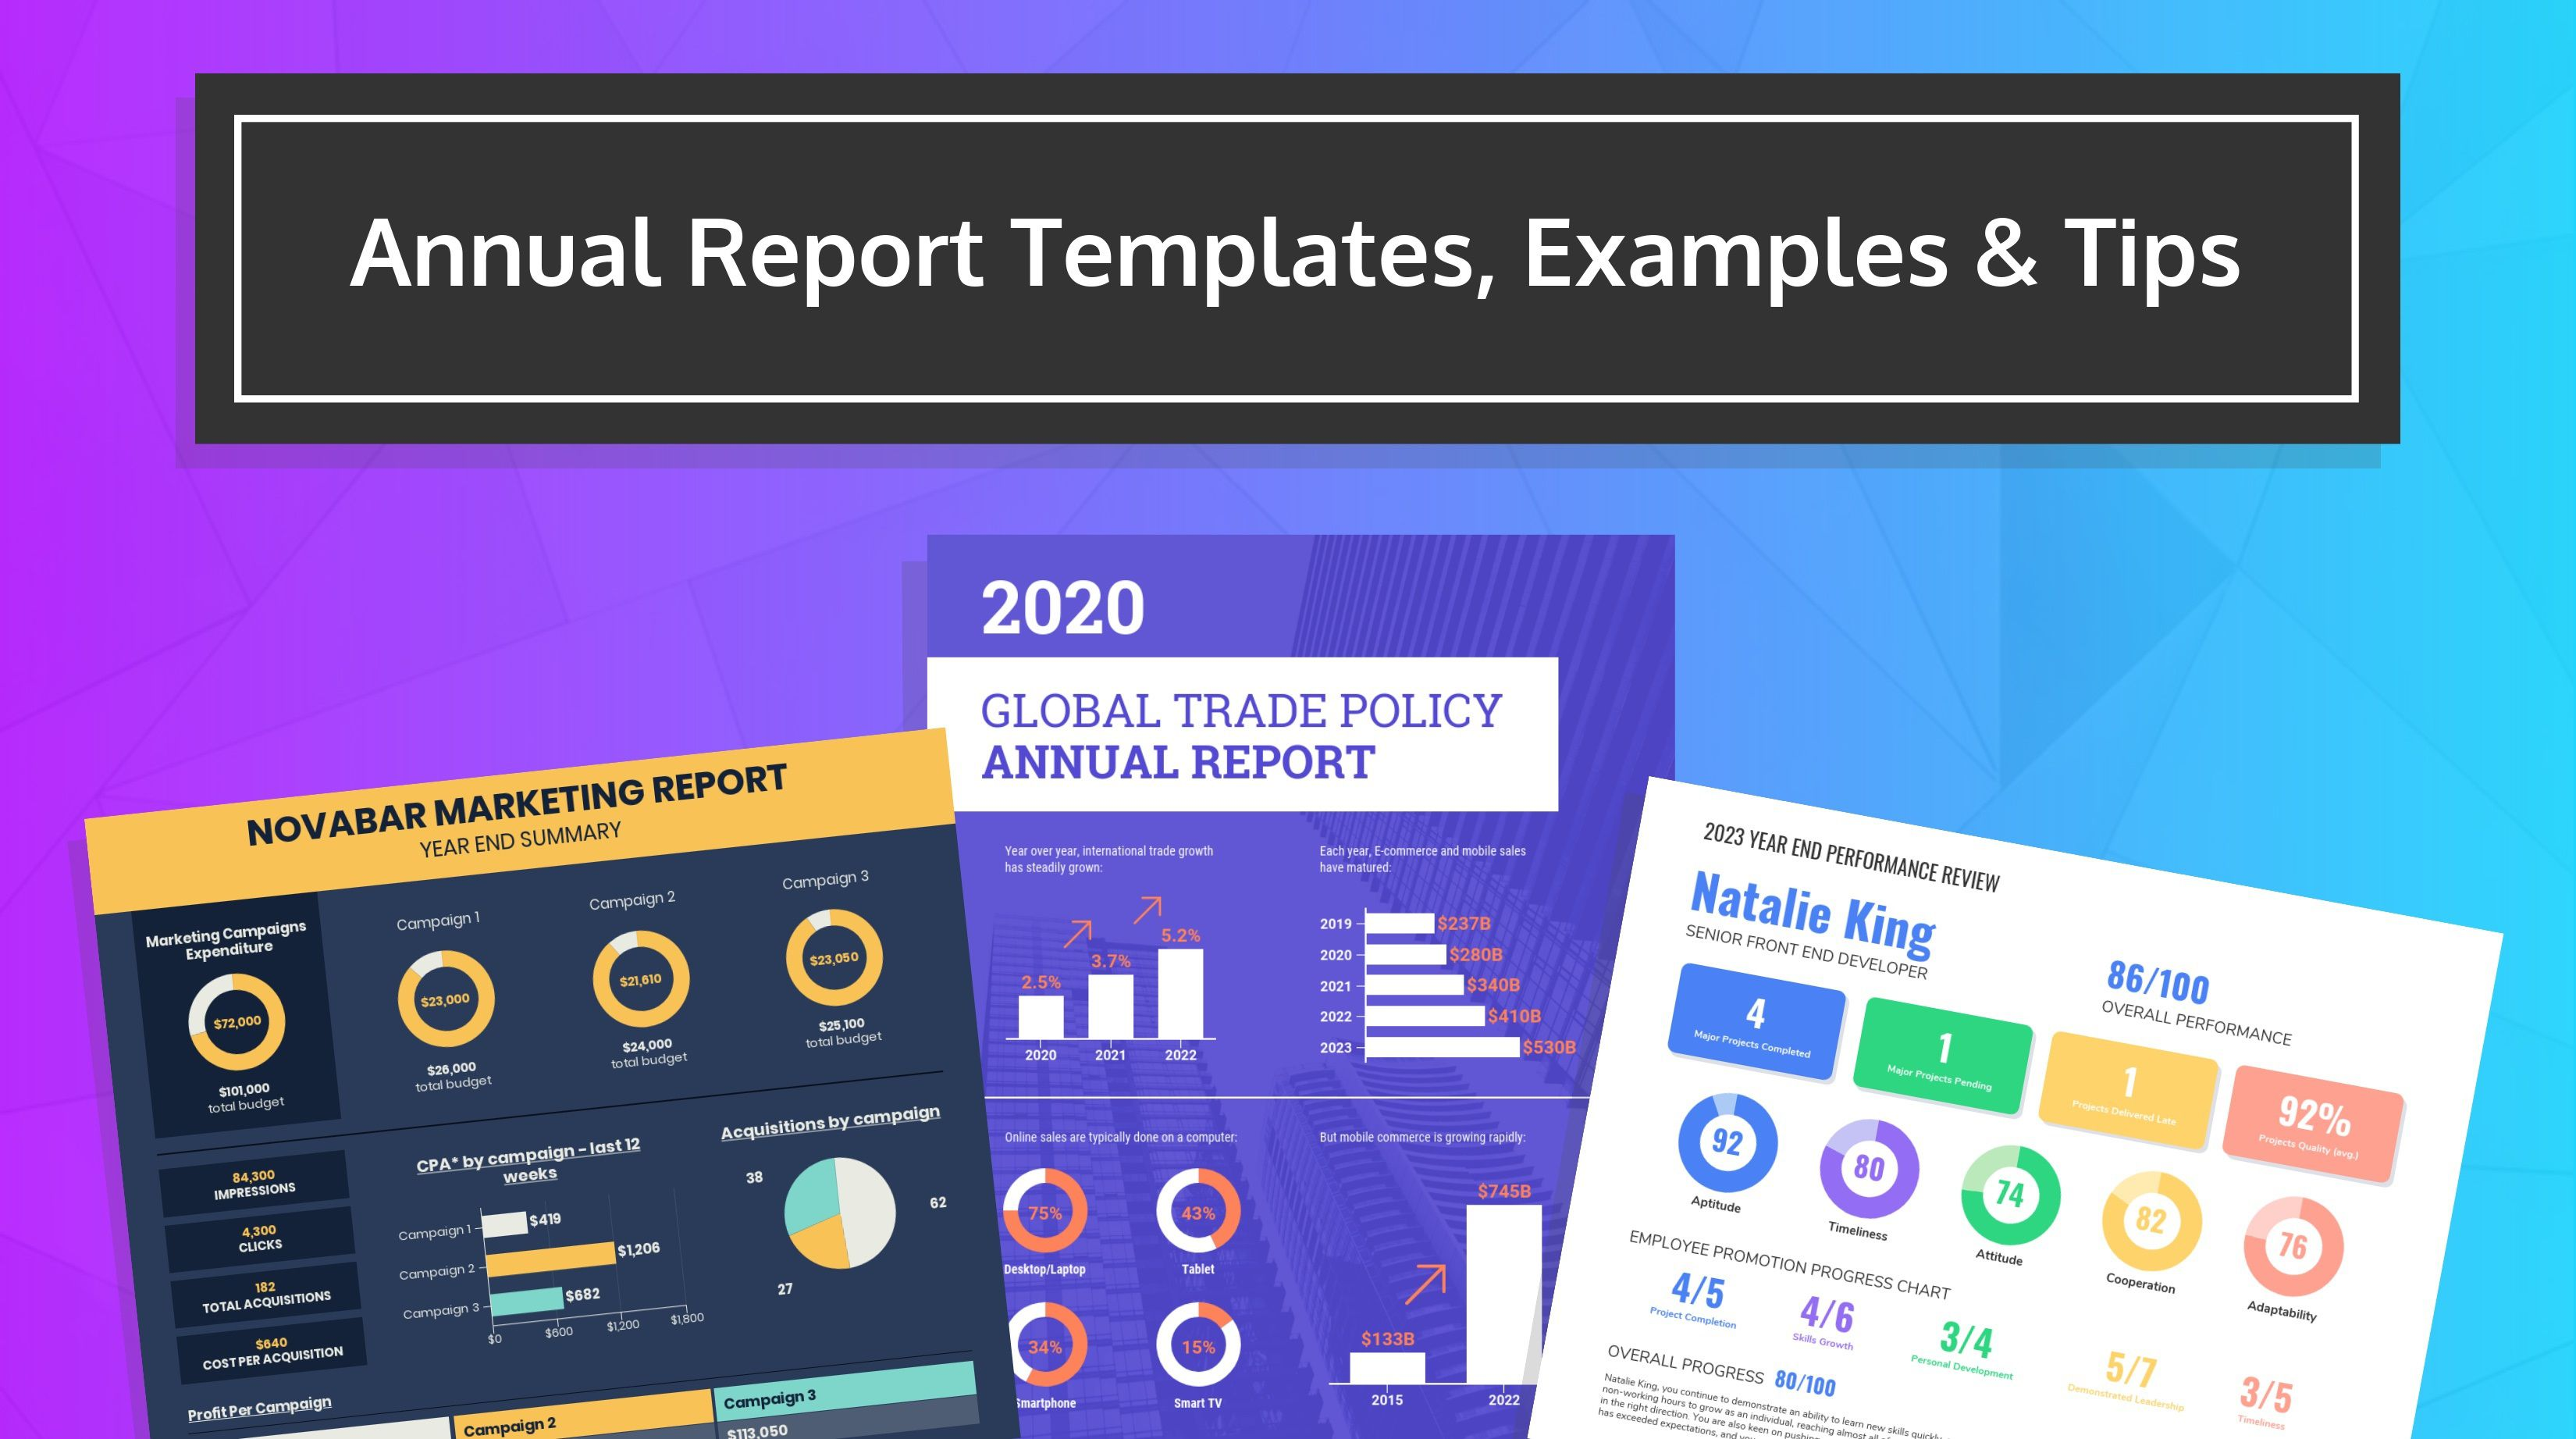 003 Amazing Annual Report Design Template Sample  Templates Word Timeles Free Download InFull